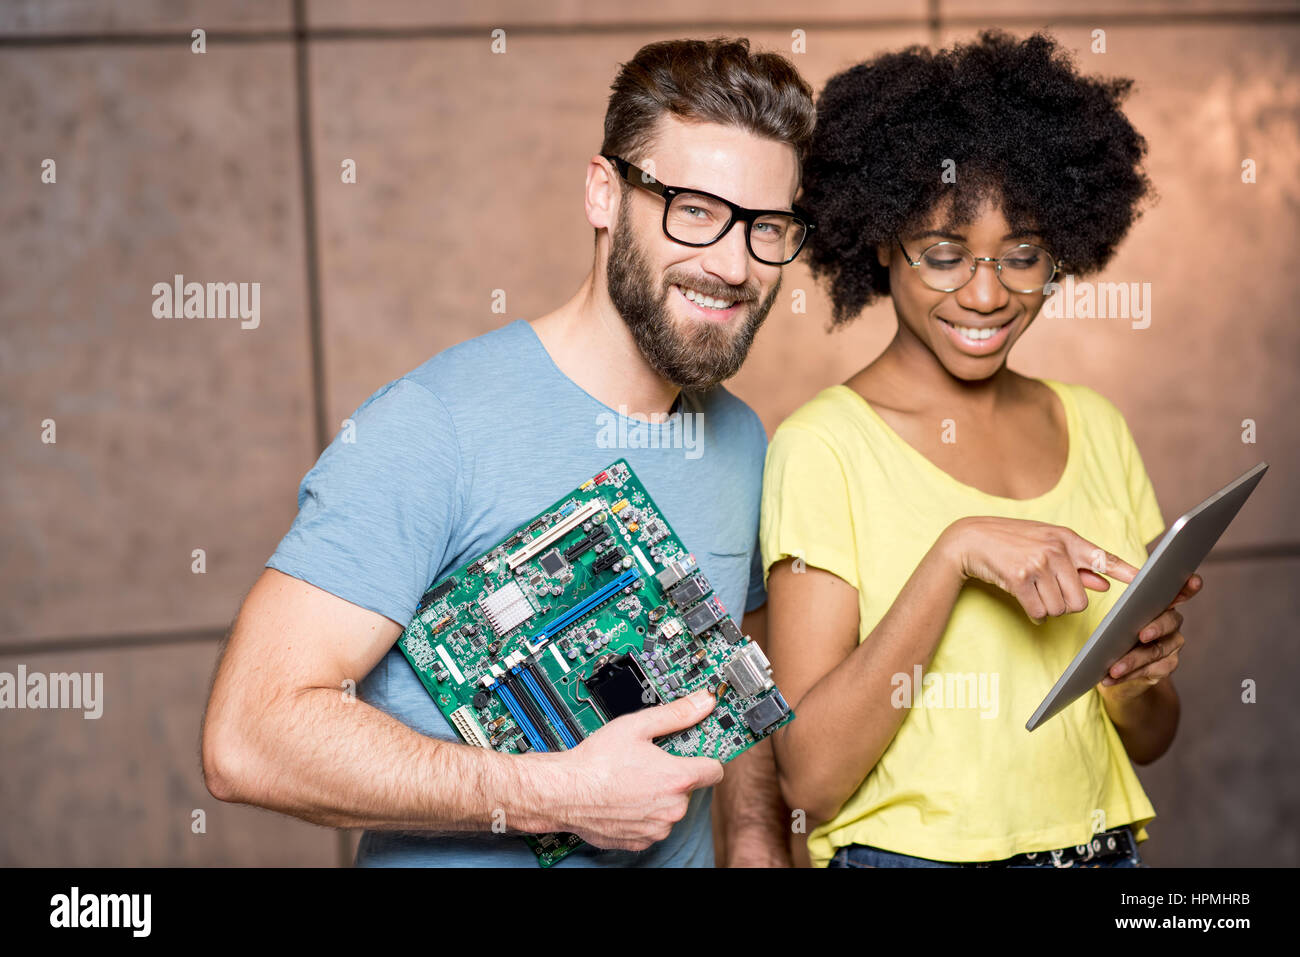 Programmers with computer motherboard - Stock Image